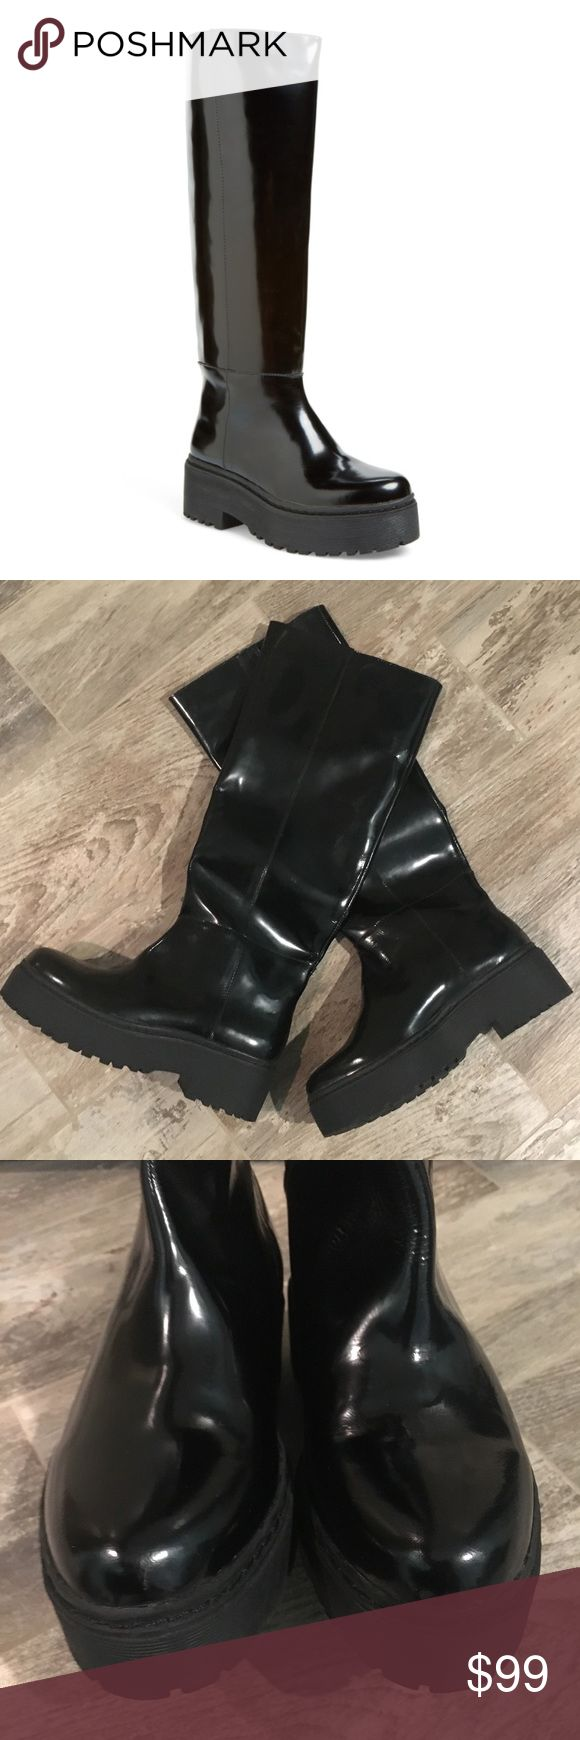 Jeffrey Campbell boots New!  Never worn! Patent leather delfonic boots.  Lightweight and very comfortable!  True to size 8.5!  Listed under winter boots... not necessarily rain boots tho! Jeffrey Campbell Shoes Winter & Rain Boots